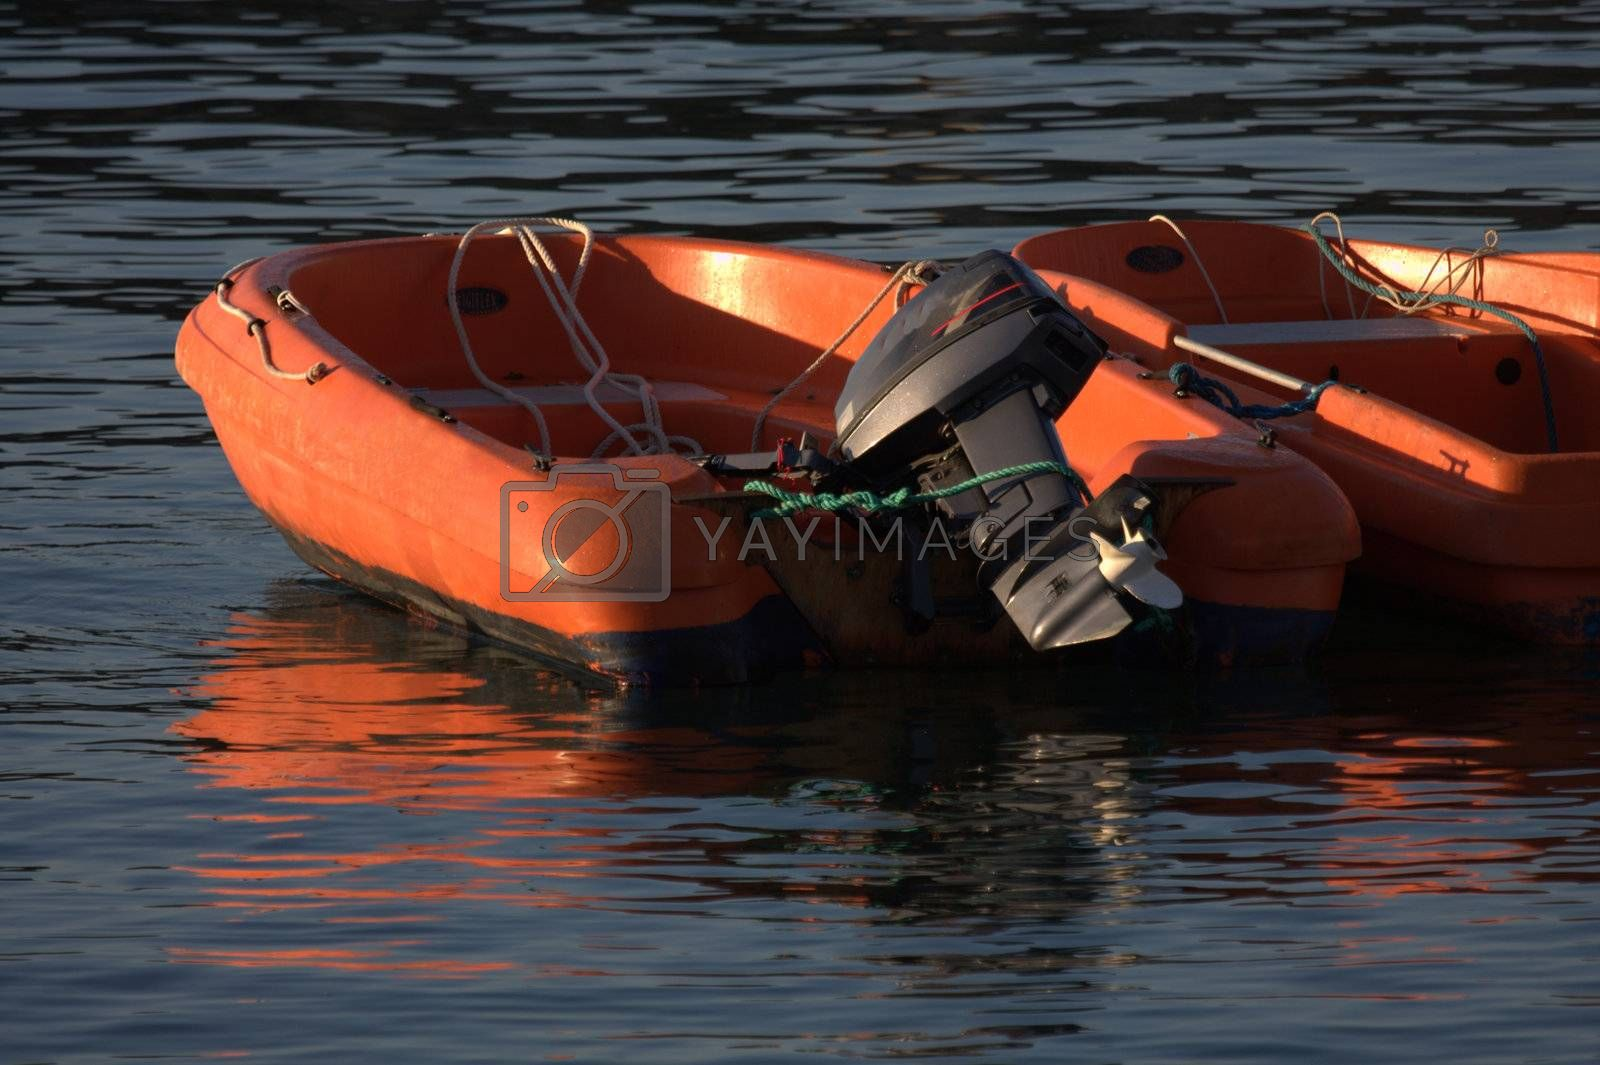 Royalty free image of two inflatable boats by allg